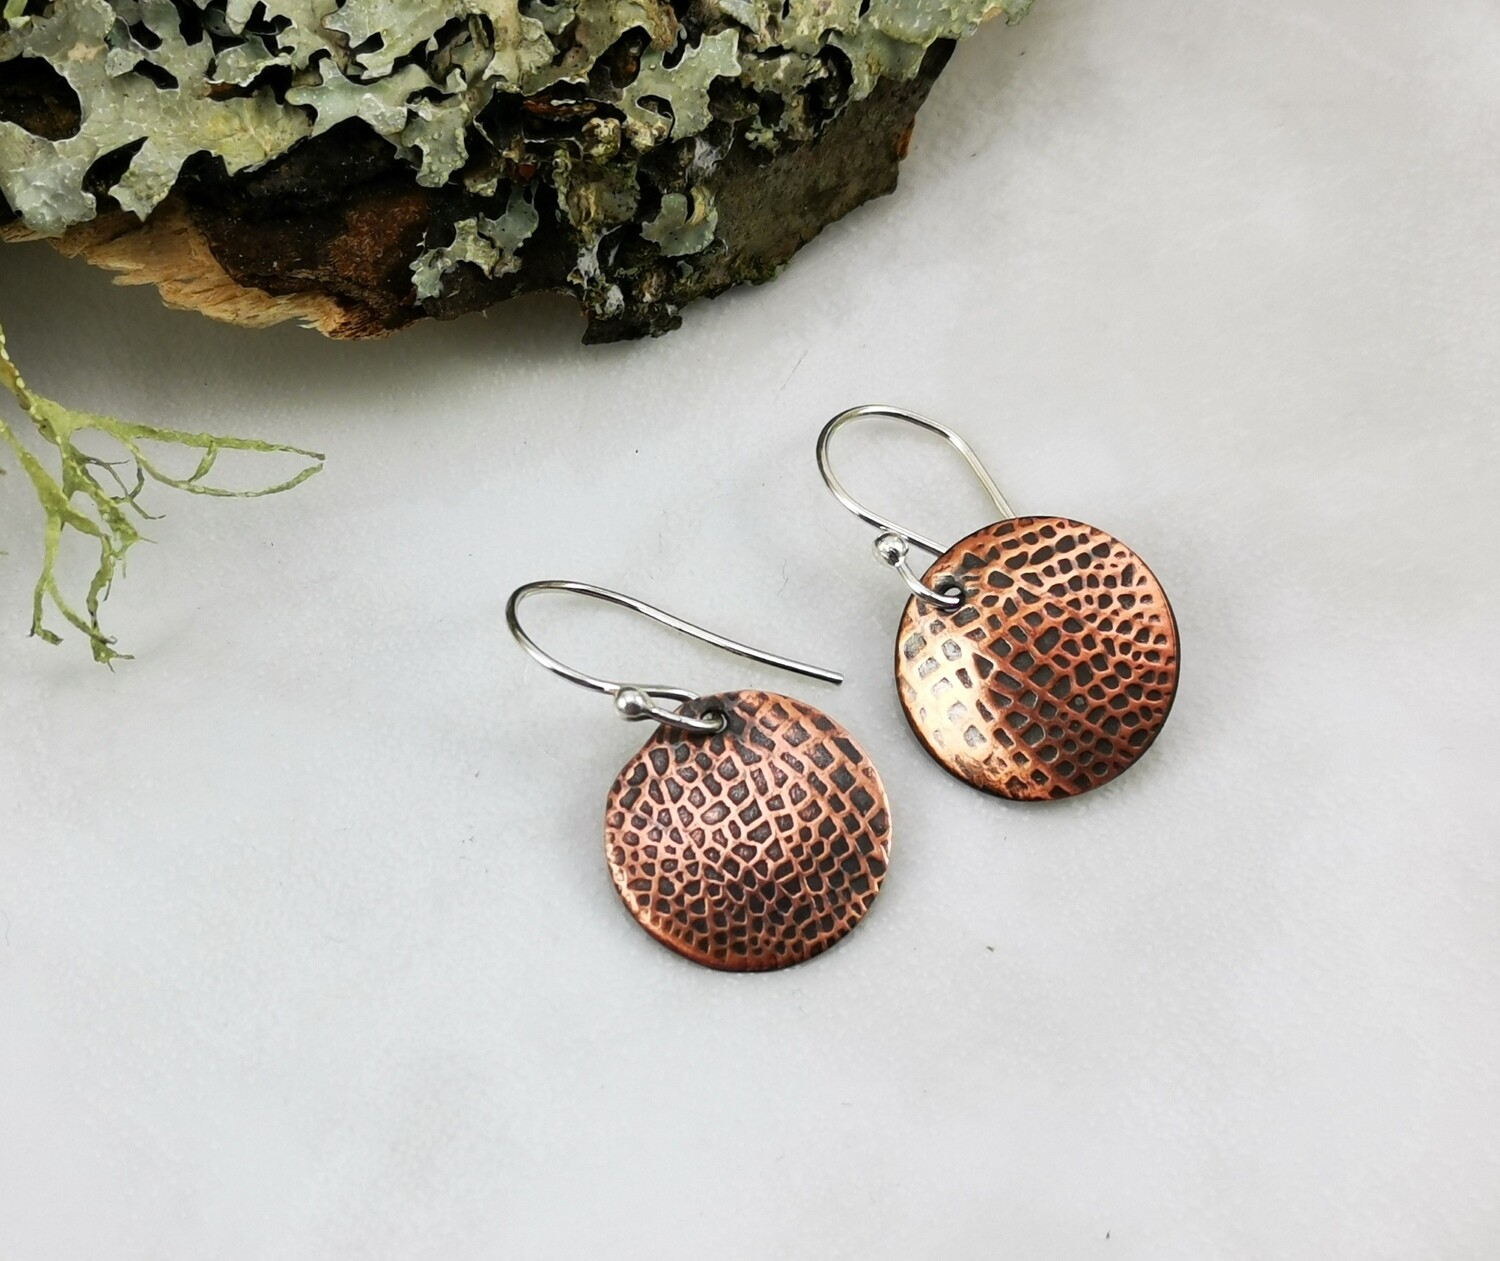 Tiny Round Fairy / Dragonfly Wings Copper Earrings on Sterling Silver Ear Wires